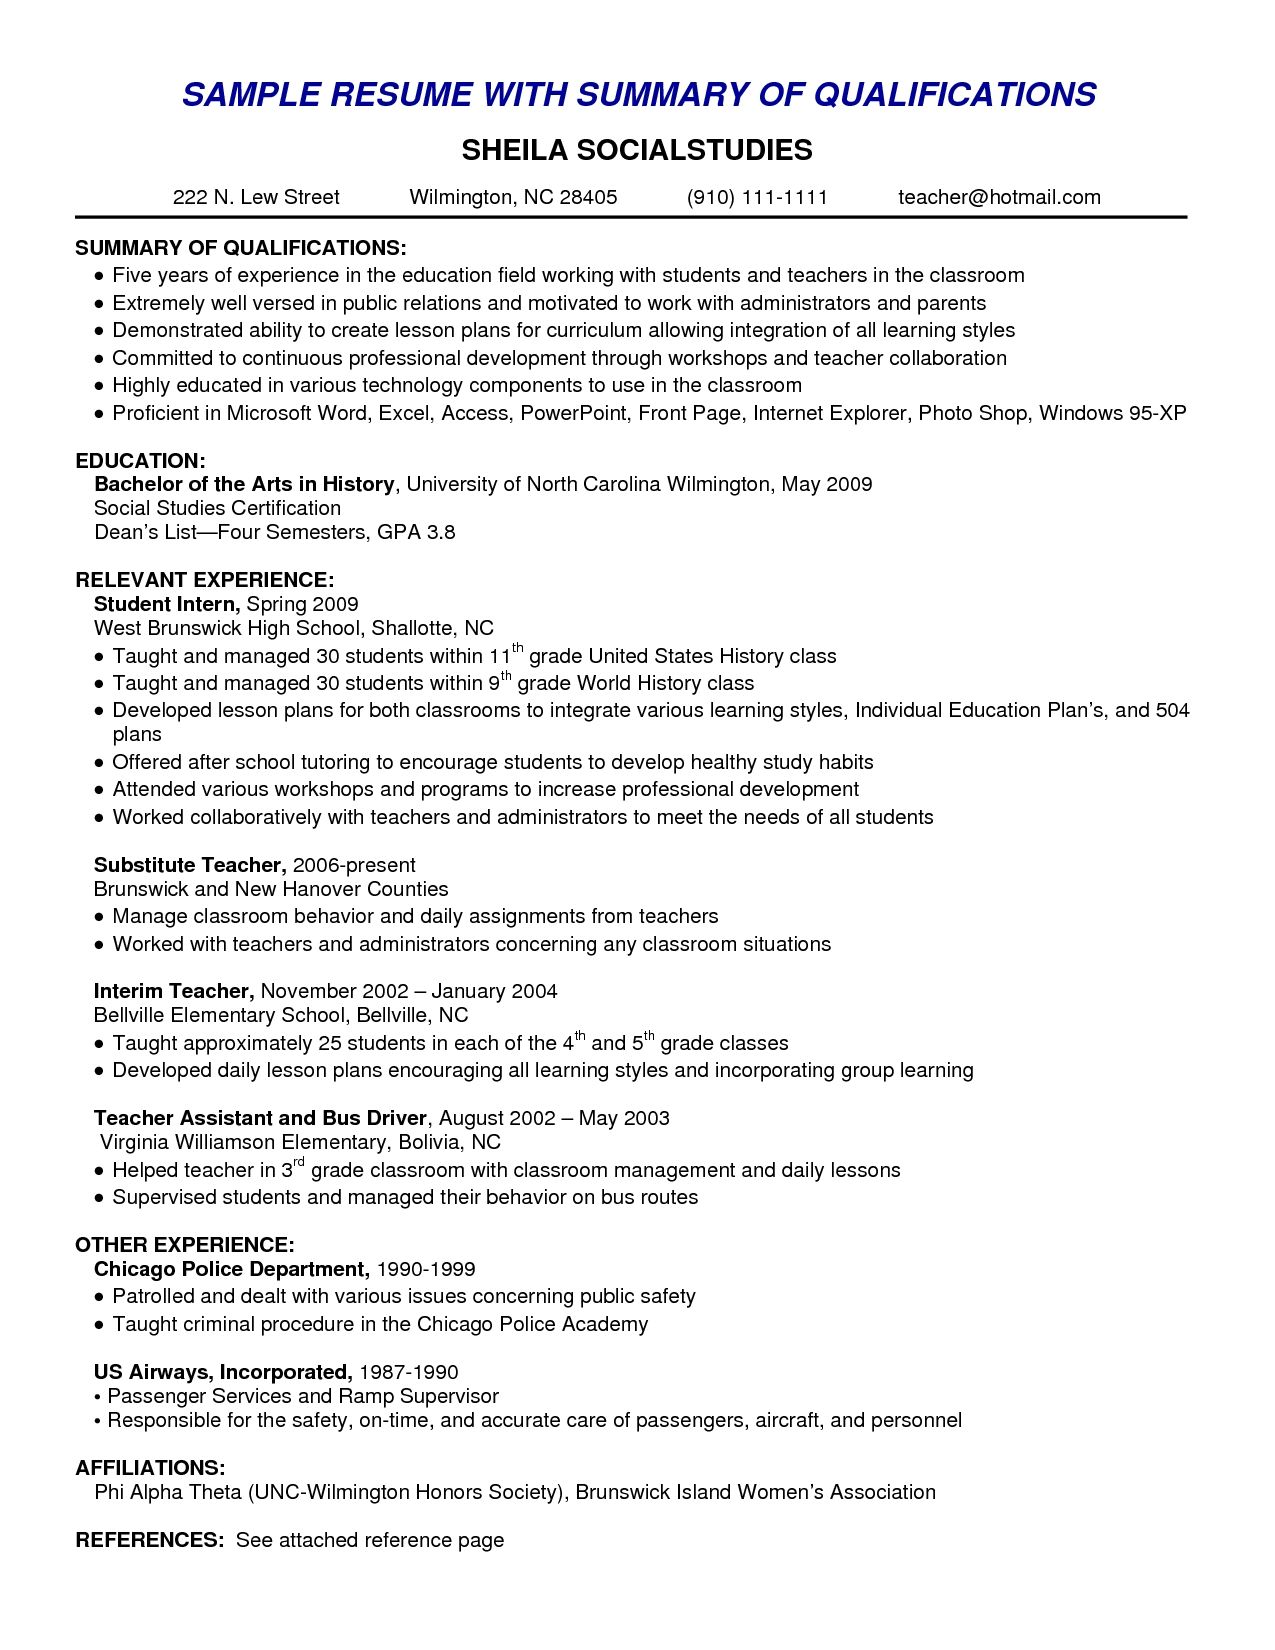 Social Work Resume Objective Resume Skills Summary Examples Example Of Skills Summary For